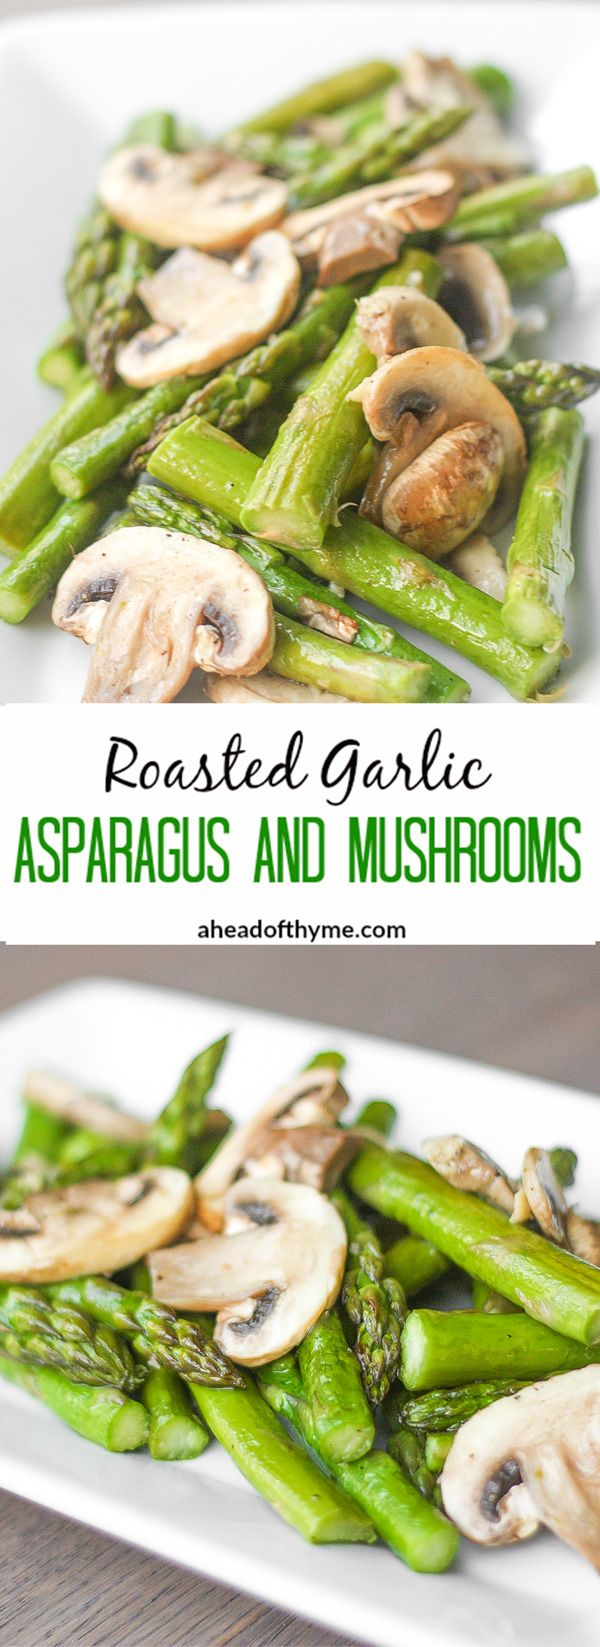 Roasted Garlic Asparagus and Mushrooms: The perfect vegan side dish to any meal. Serve with chicken breast or salmon for a complete meal | aheadofthyme.com via @aheadofthyme